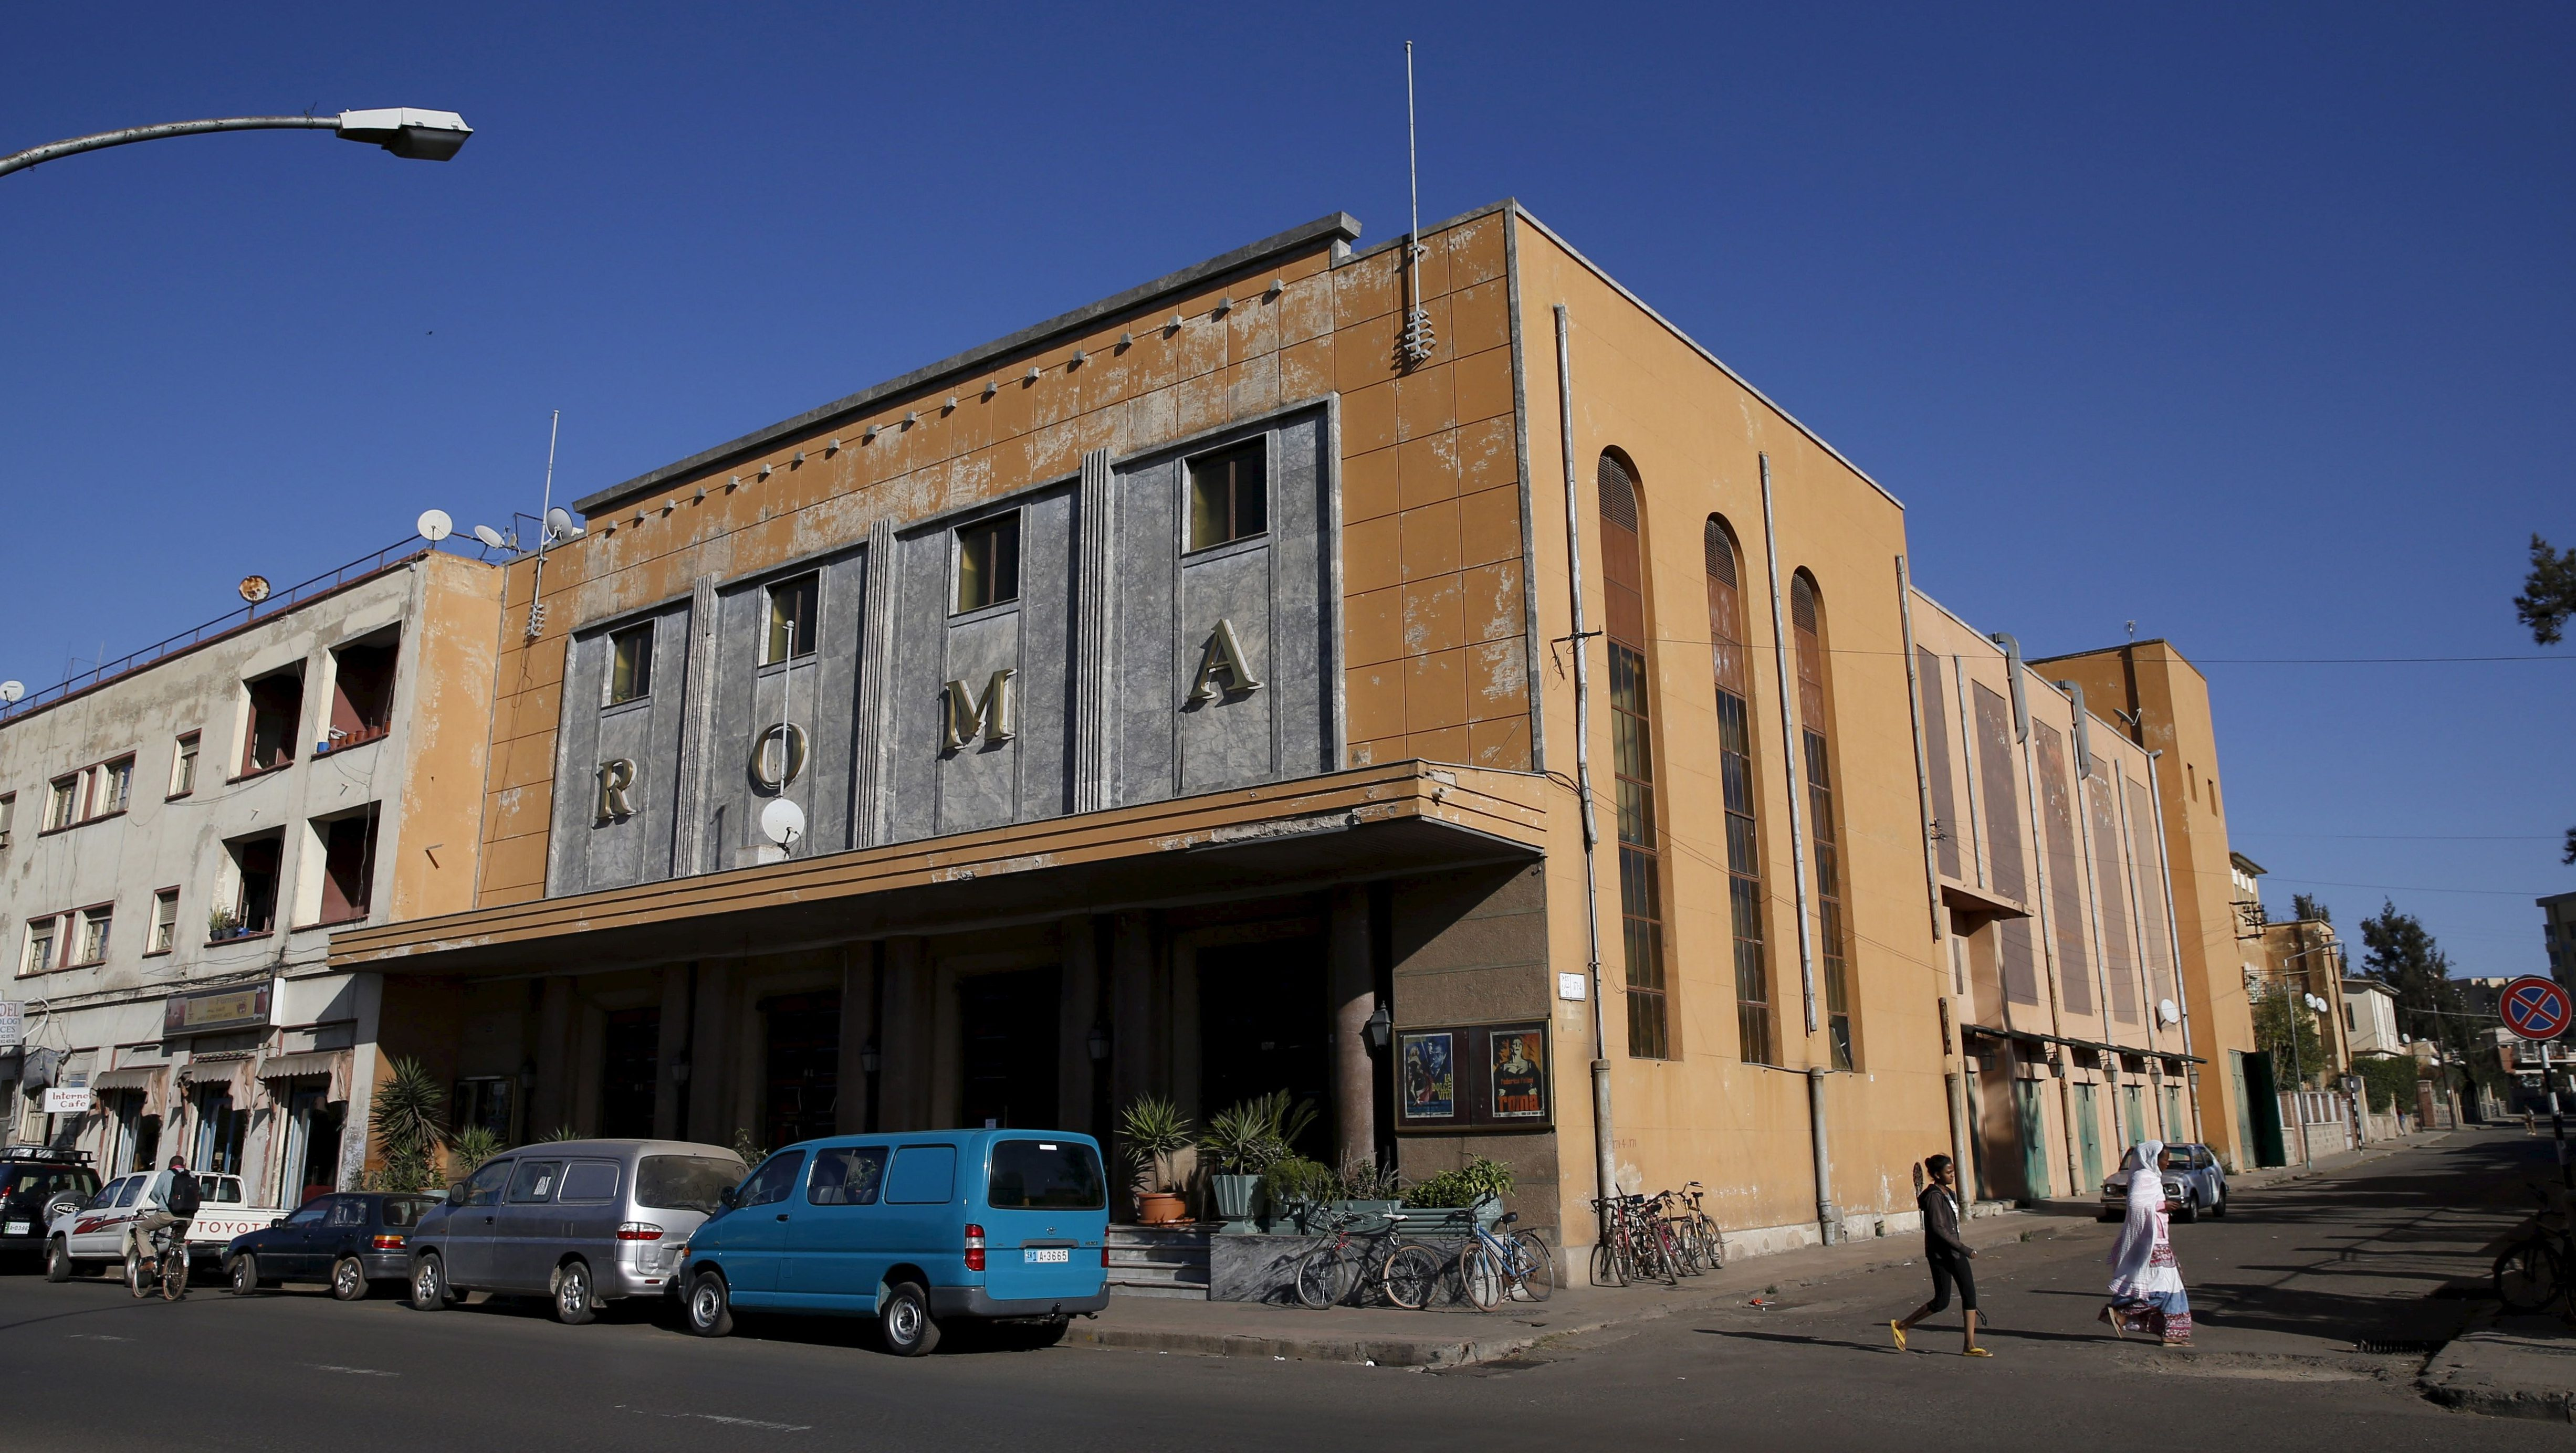 """A general view shows the Roma Cinema on Samatat Avenue in Eritrea's capital Asmara, February 20, 2016. Eritrea's capital city boasts one of the world's finest collections of early 20th century architecture, which the authorities want declared a UNESCO World Heritage Site. When Italy's colonial experiment in Eritrea ended in 1941, it left behind an array of Rationalist, Futurist, Art Deco and other styles of Modernism in Asmara, a city they nicknamed """"La Piccola Roma"""" or """"Little Rome""""."""